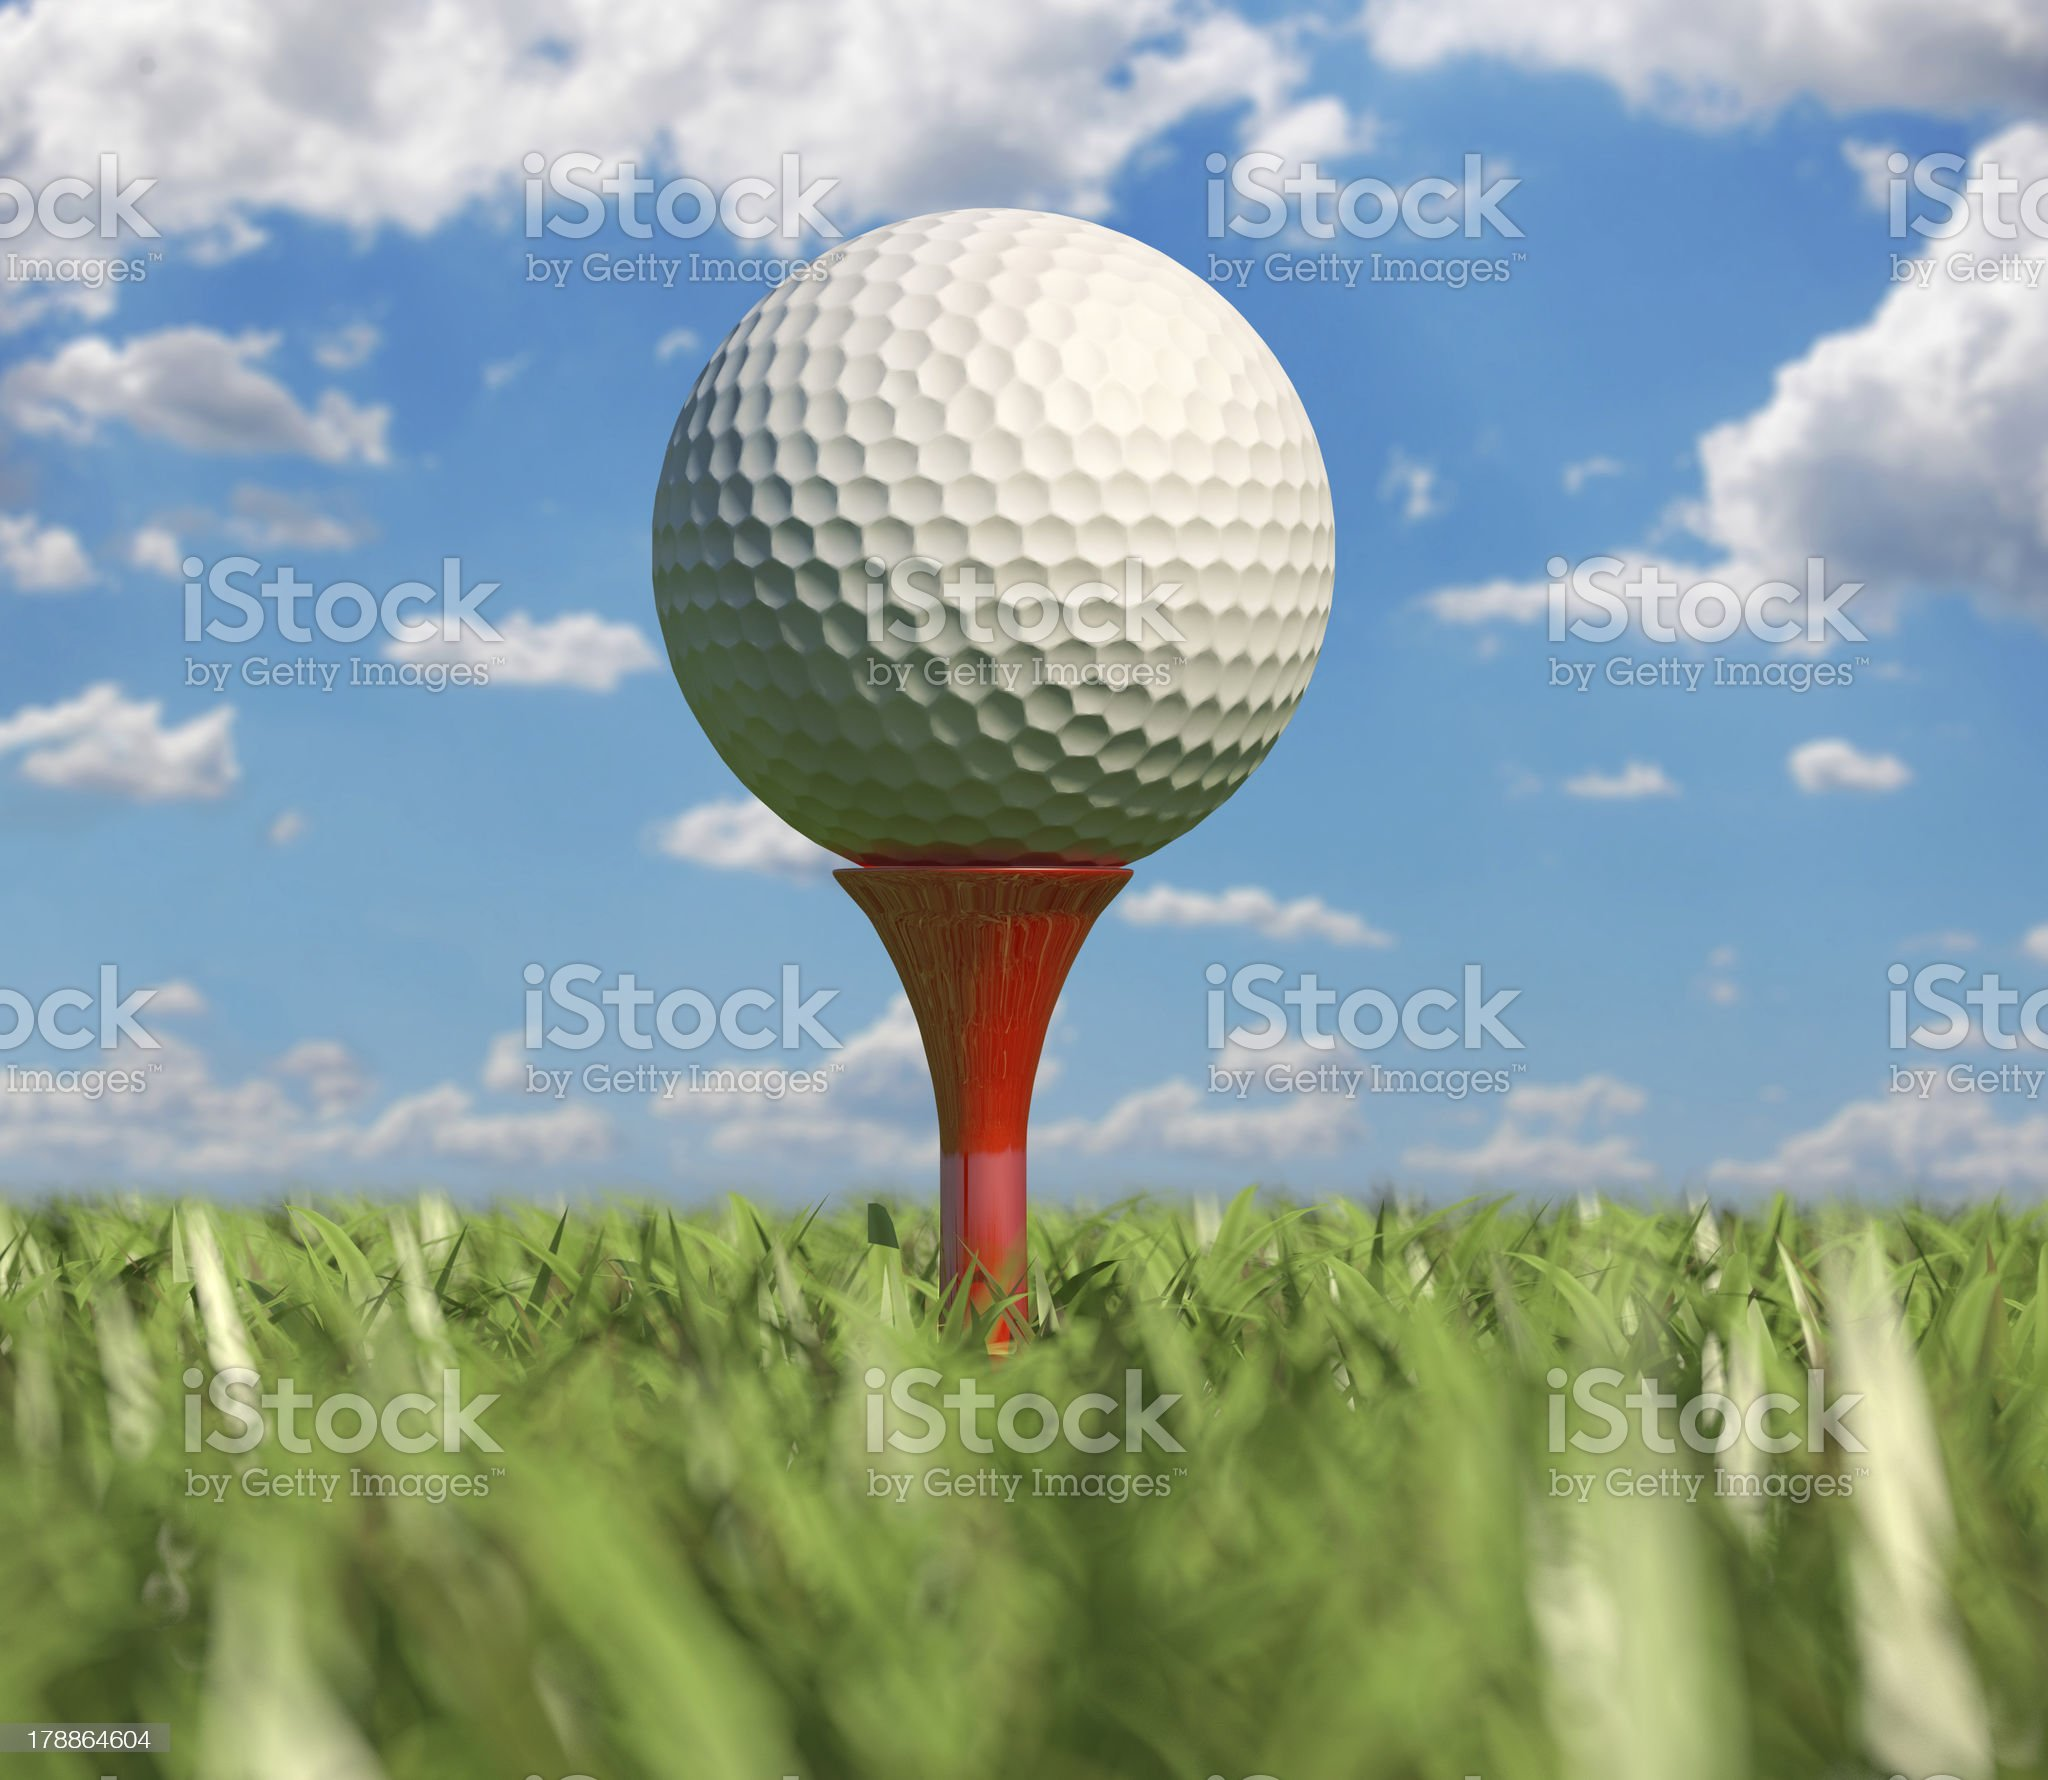 Golf ball isolated on tee in the grass. Close-up. royalty-free stock photo